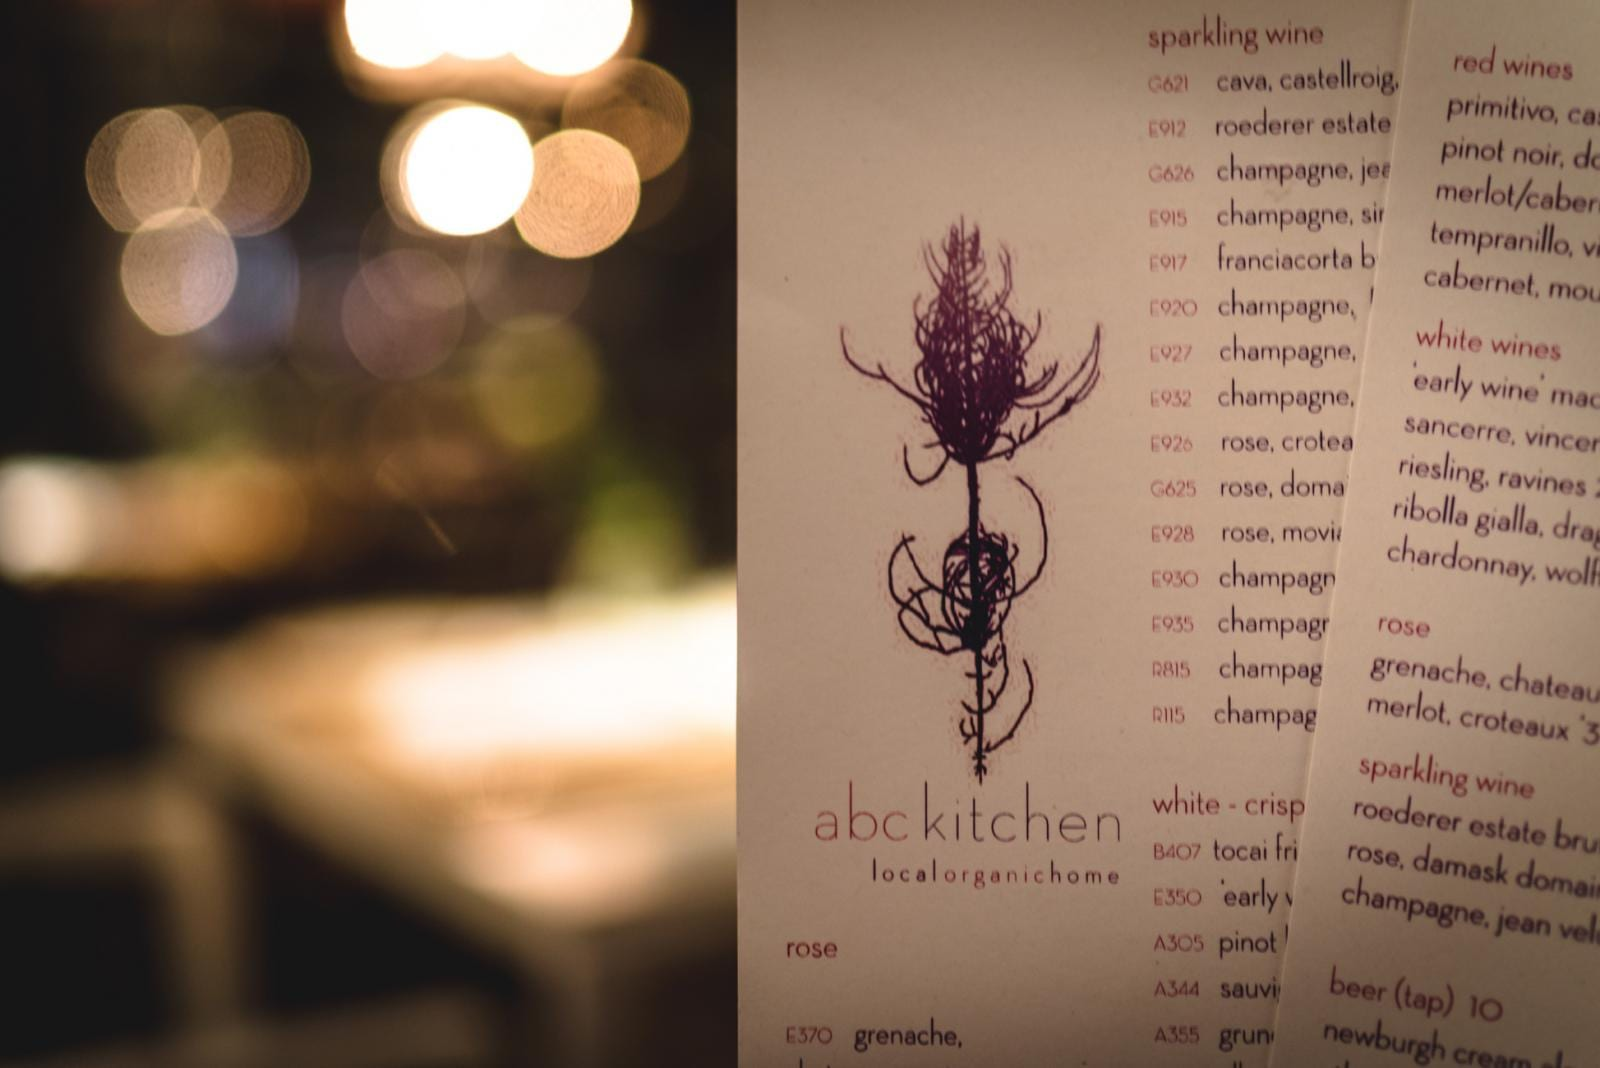 ABC Kitchen in NYC